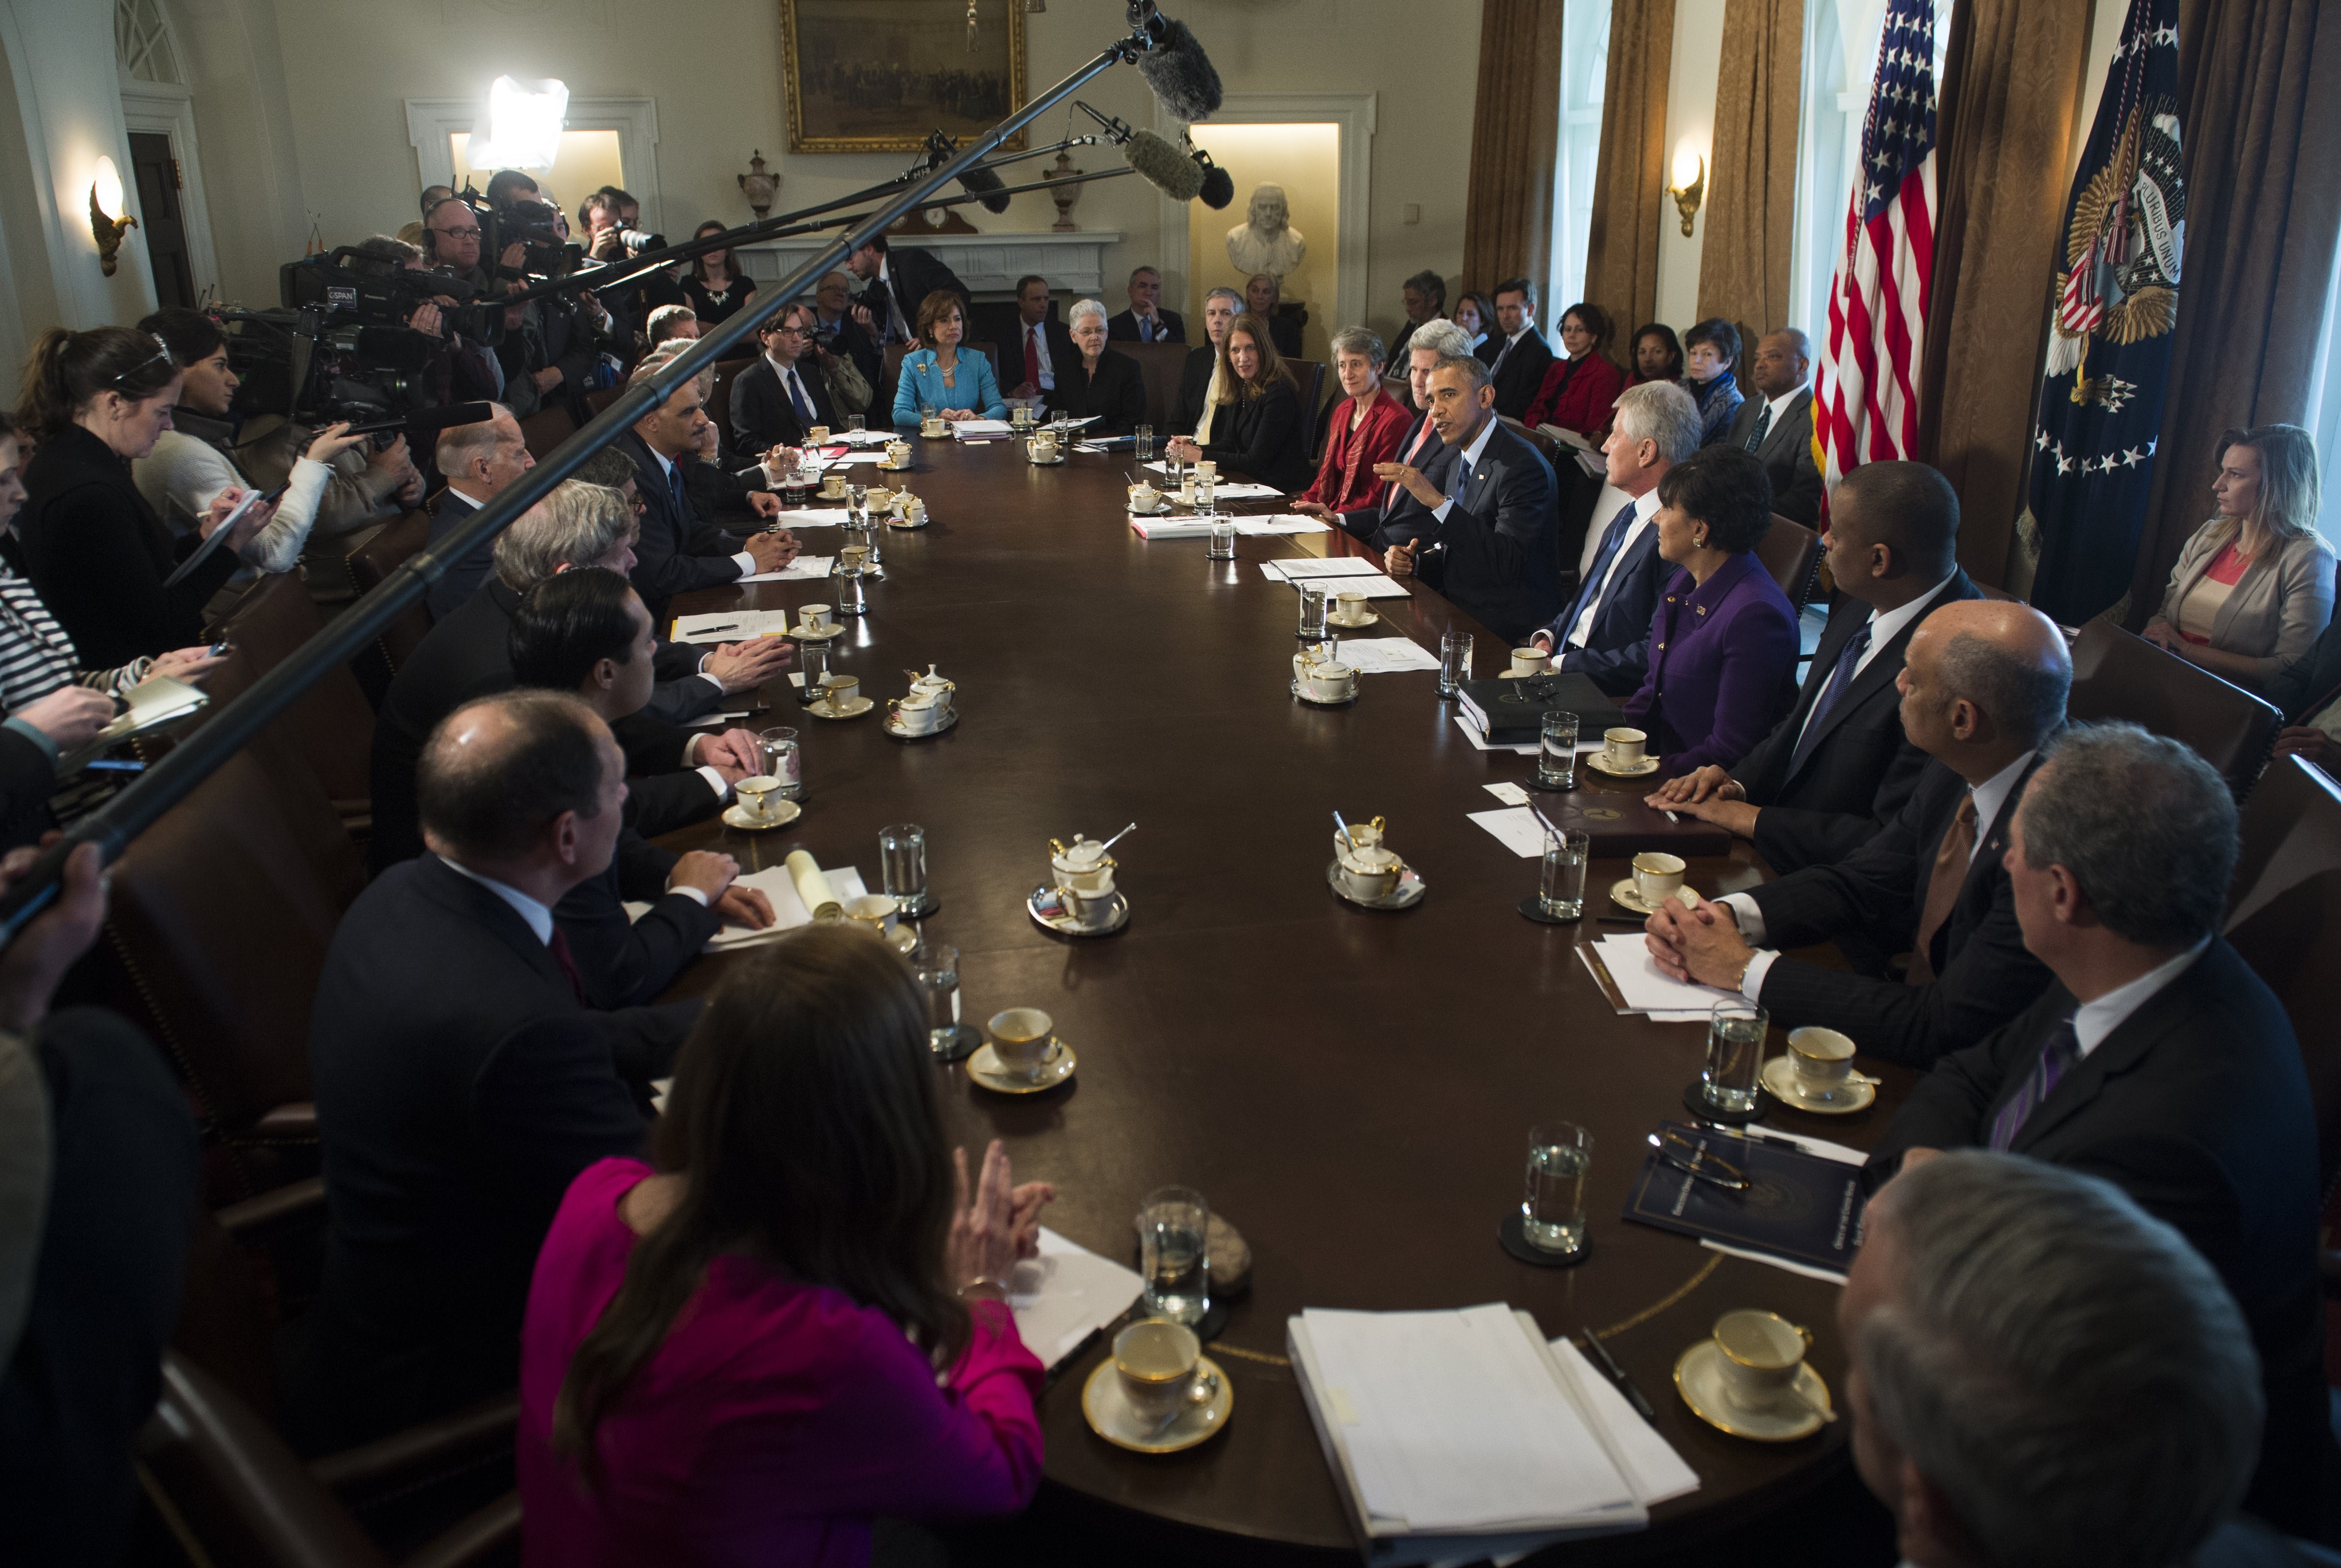 US President Barack Obama speaks during a Cabinet Meeting in the Cabinet Room of the White House in Washington on Feb. 3, 2015.